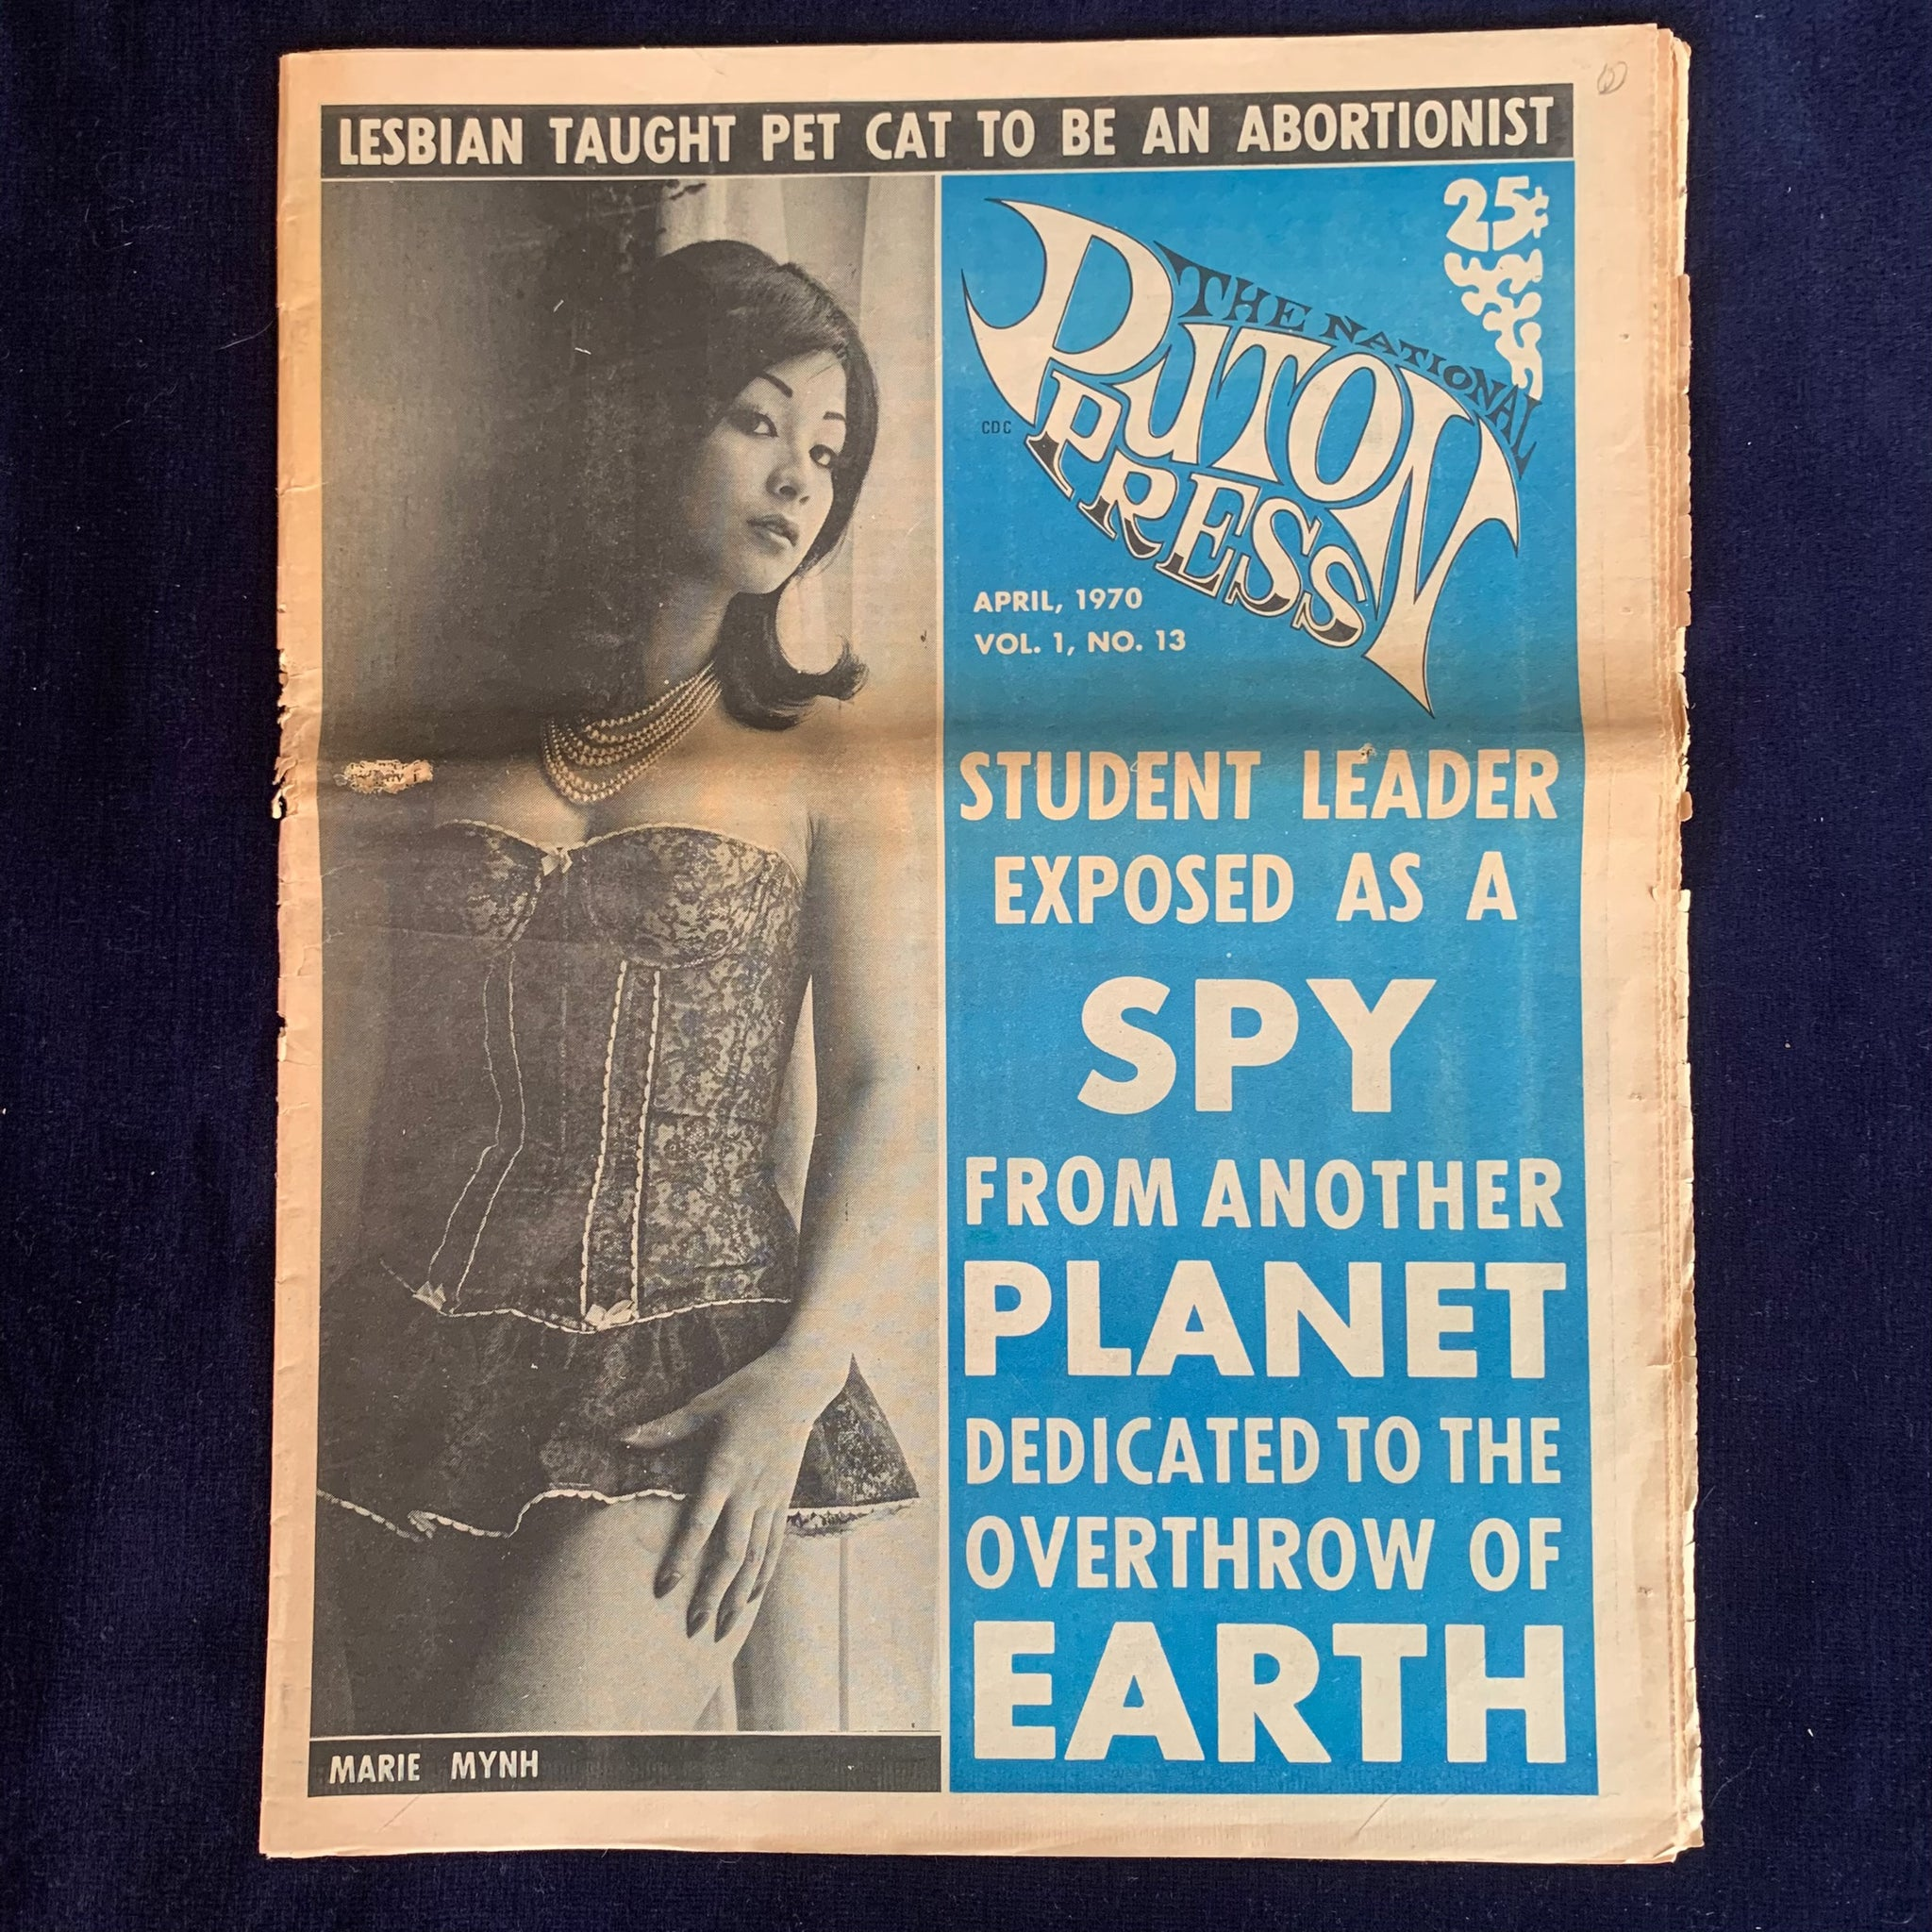 The National Puton Press Vol. 1, No. 13. April 1970